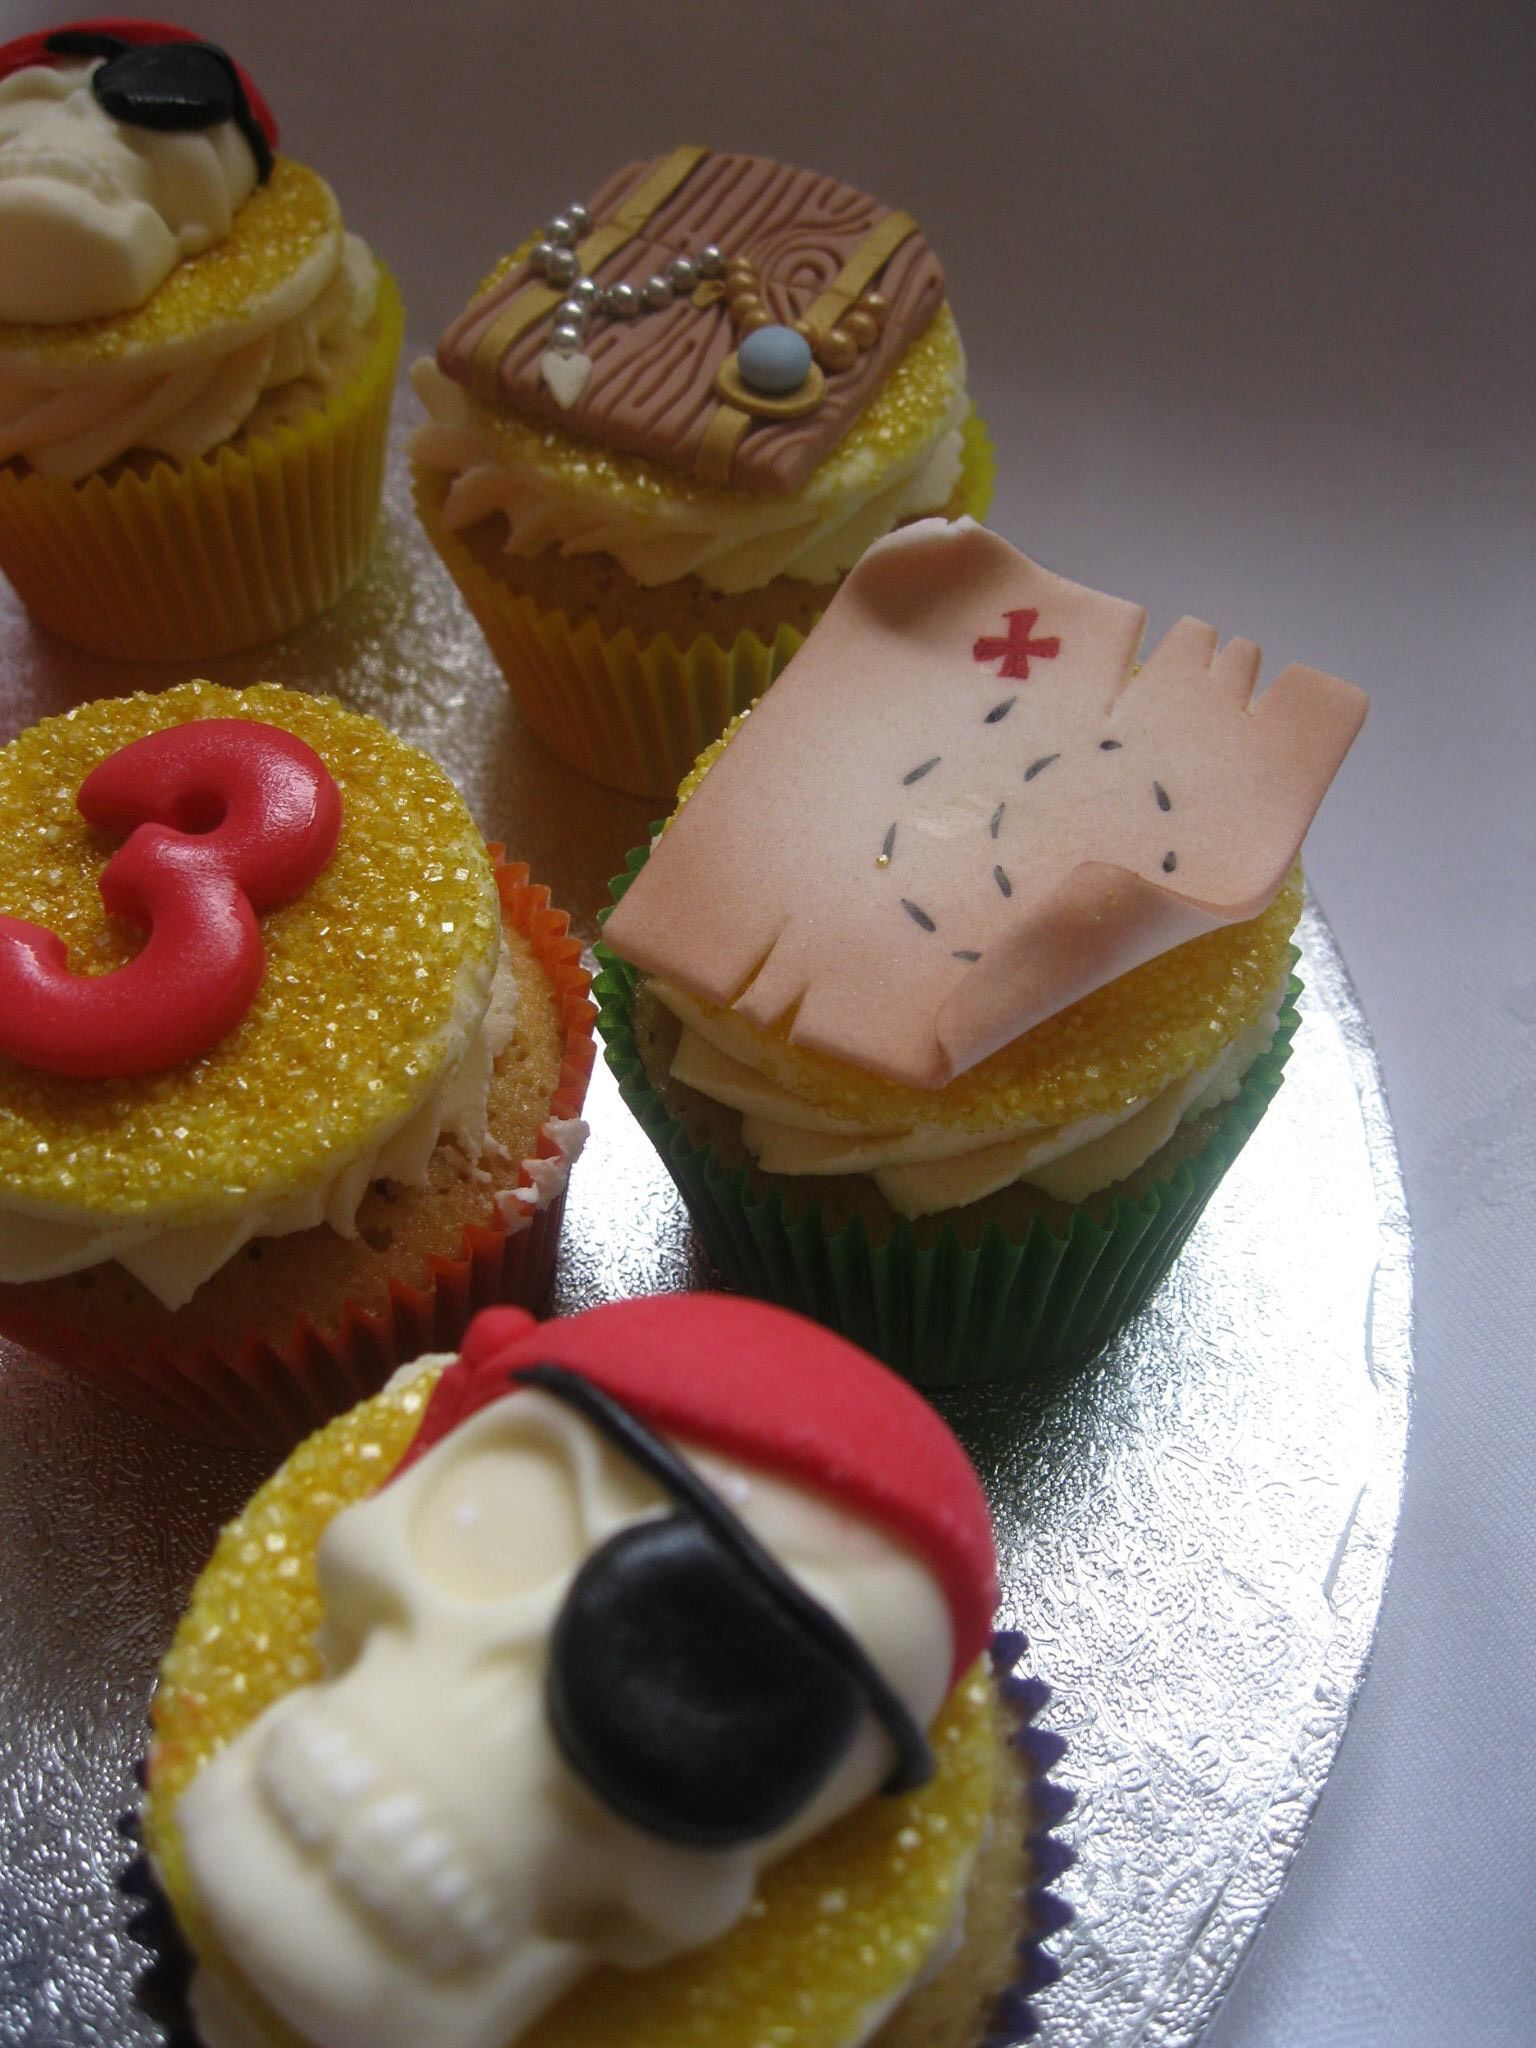 Cupcakes Bespoke Handcrafted Cakes By Darrowby Cakes